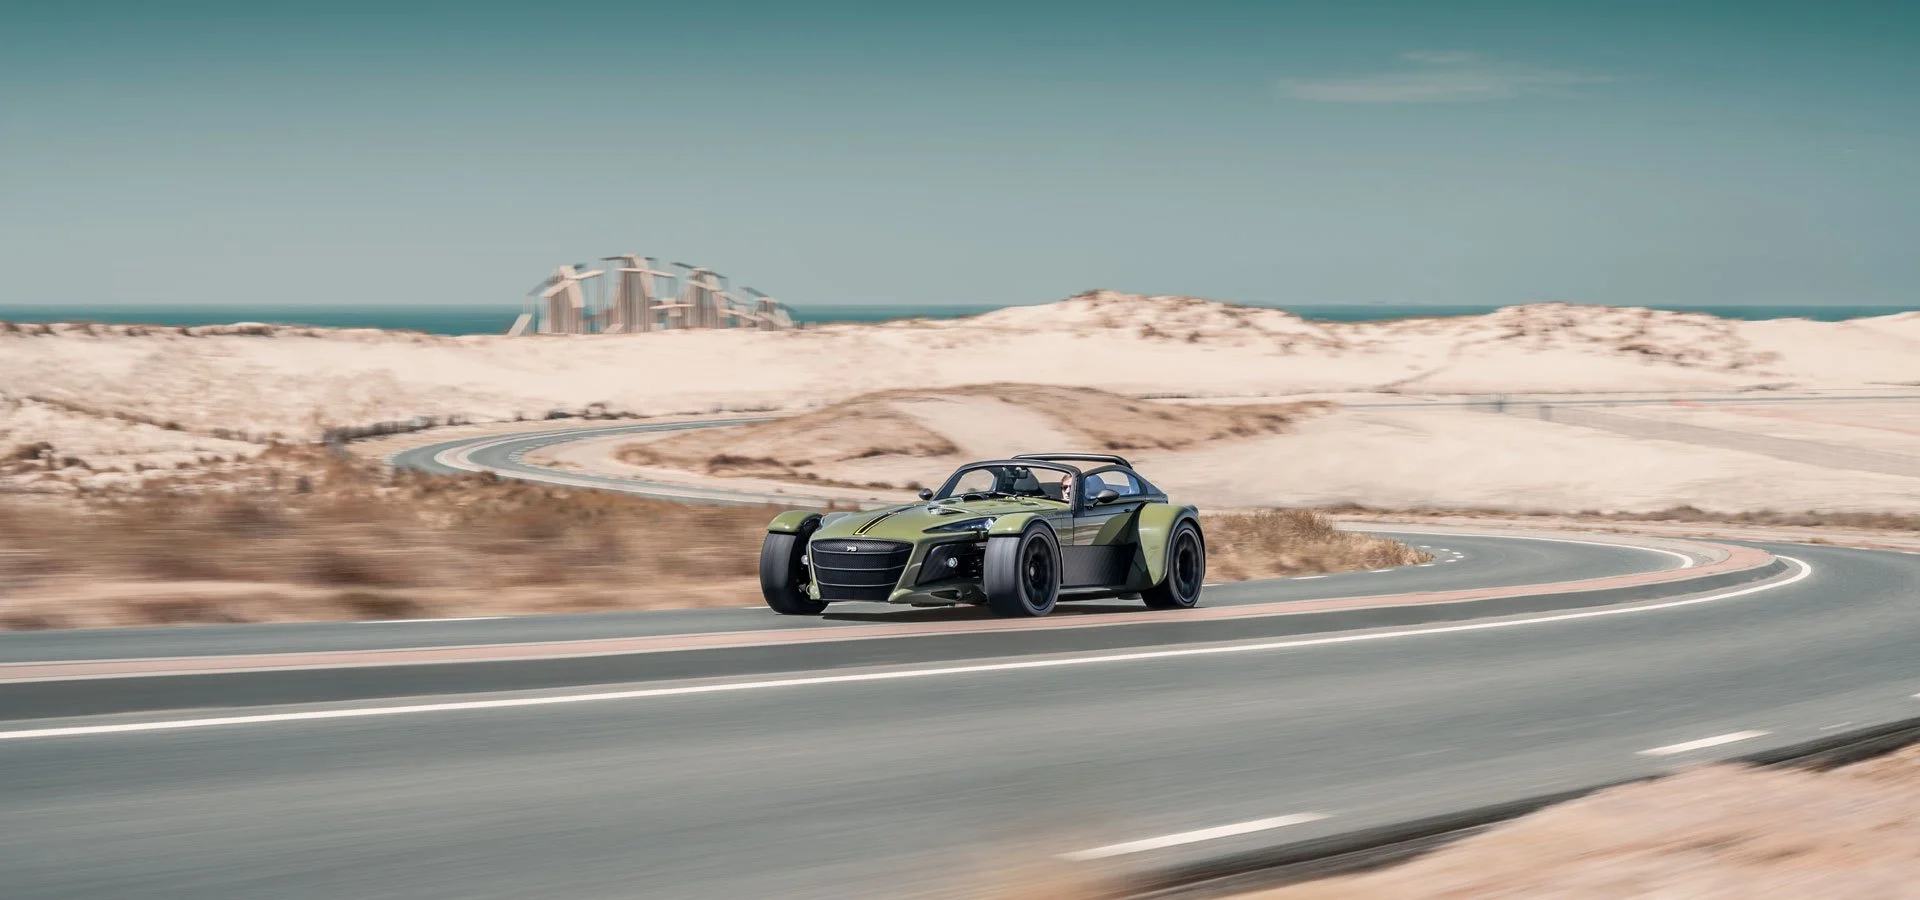 Donkervoort d8gto-jd70-10 (10)